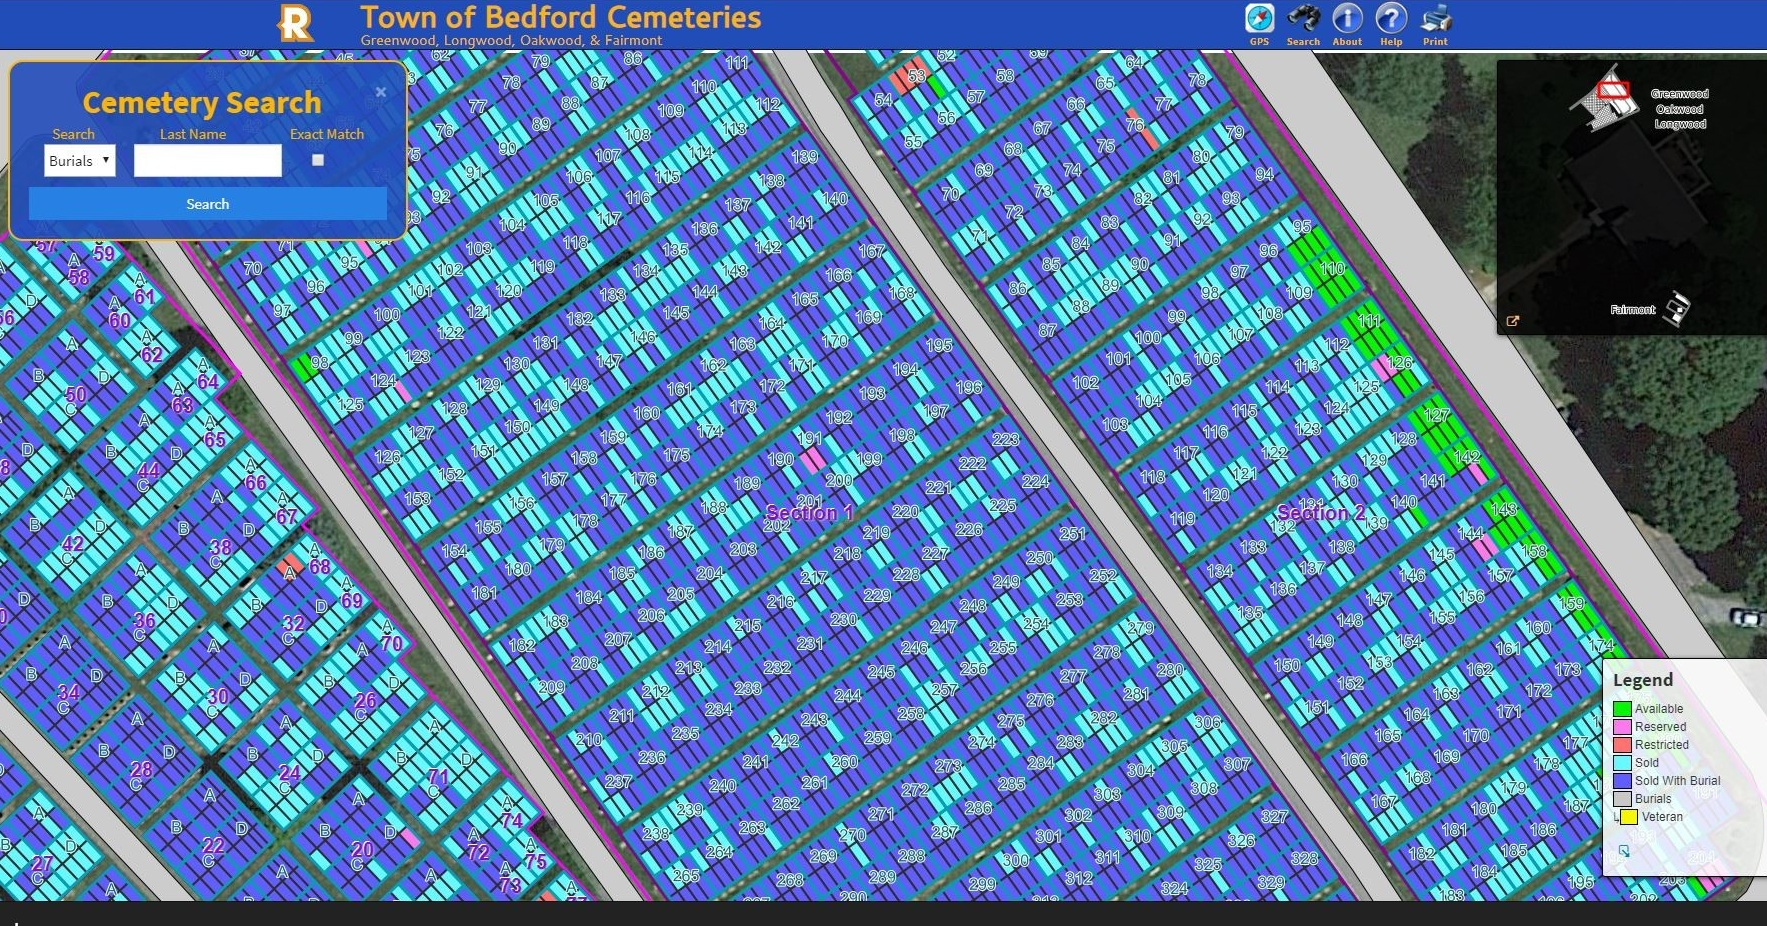 Screenshot of Town of Bedford Cemetery through the CIMS software